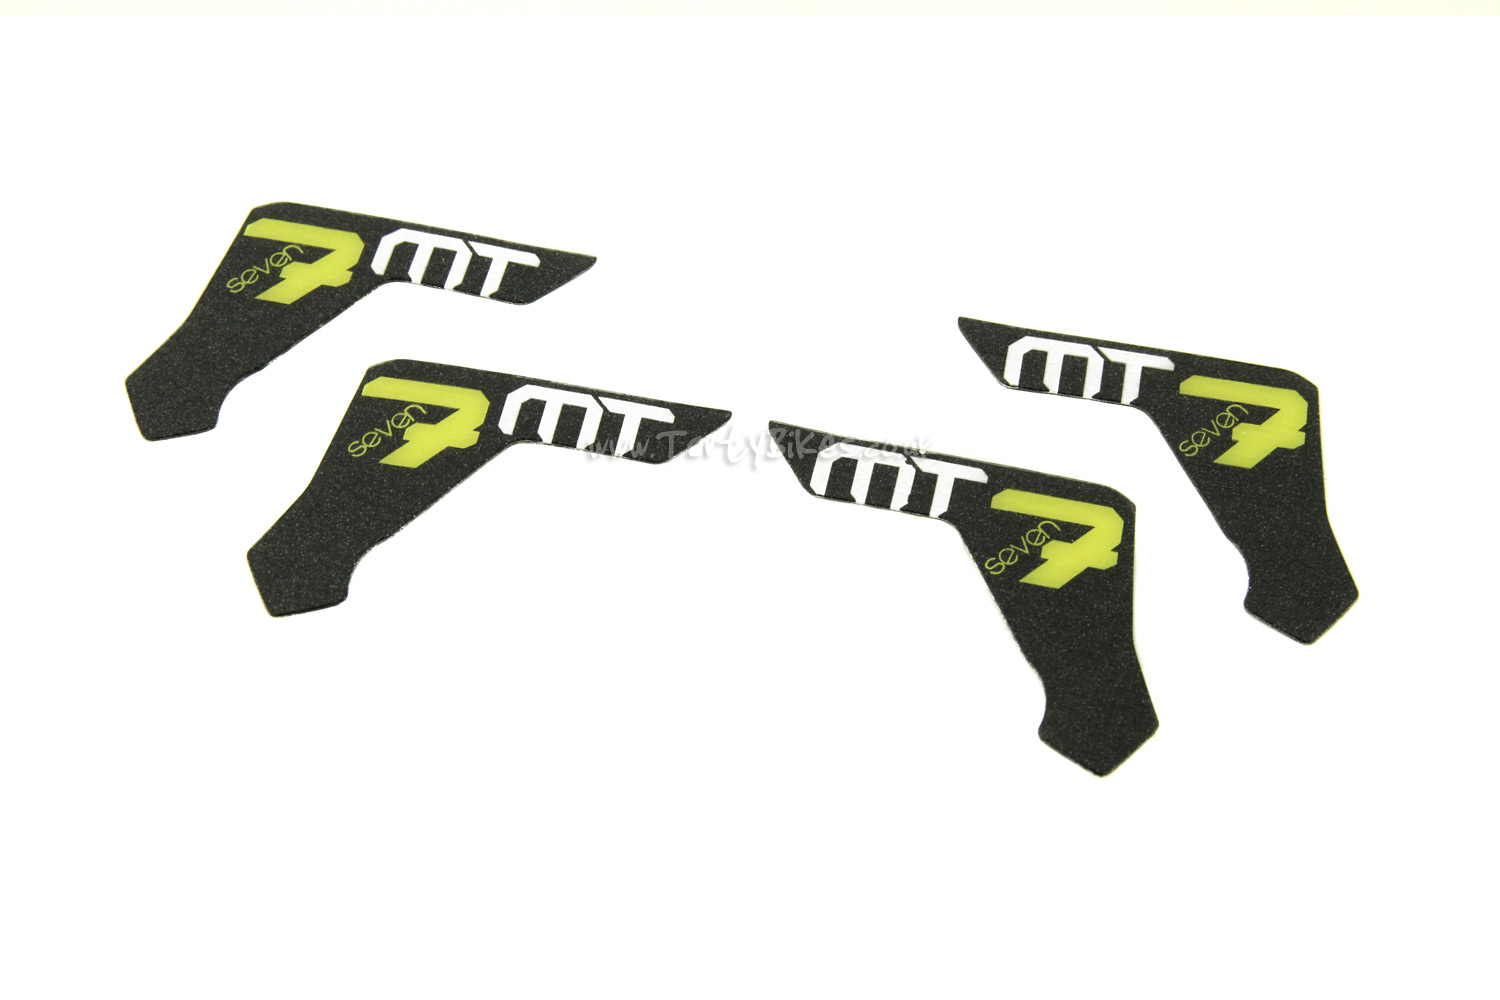 Magura MT7 Lever Cover Kit